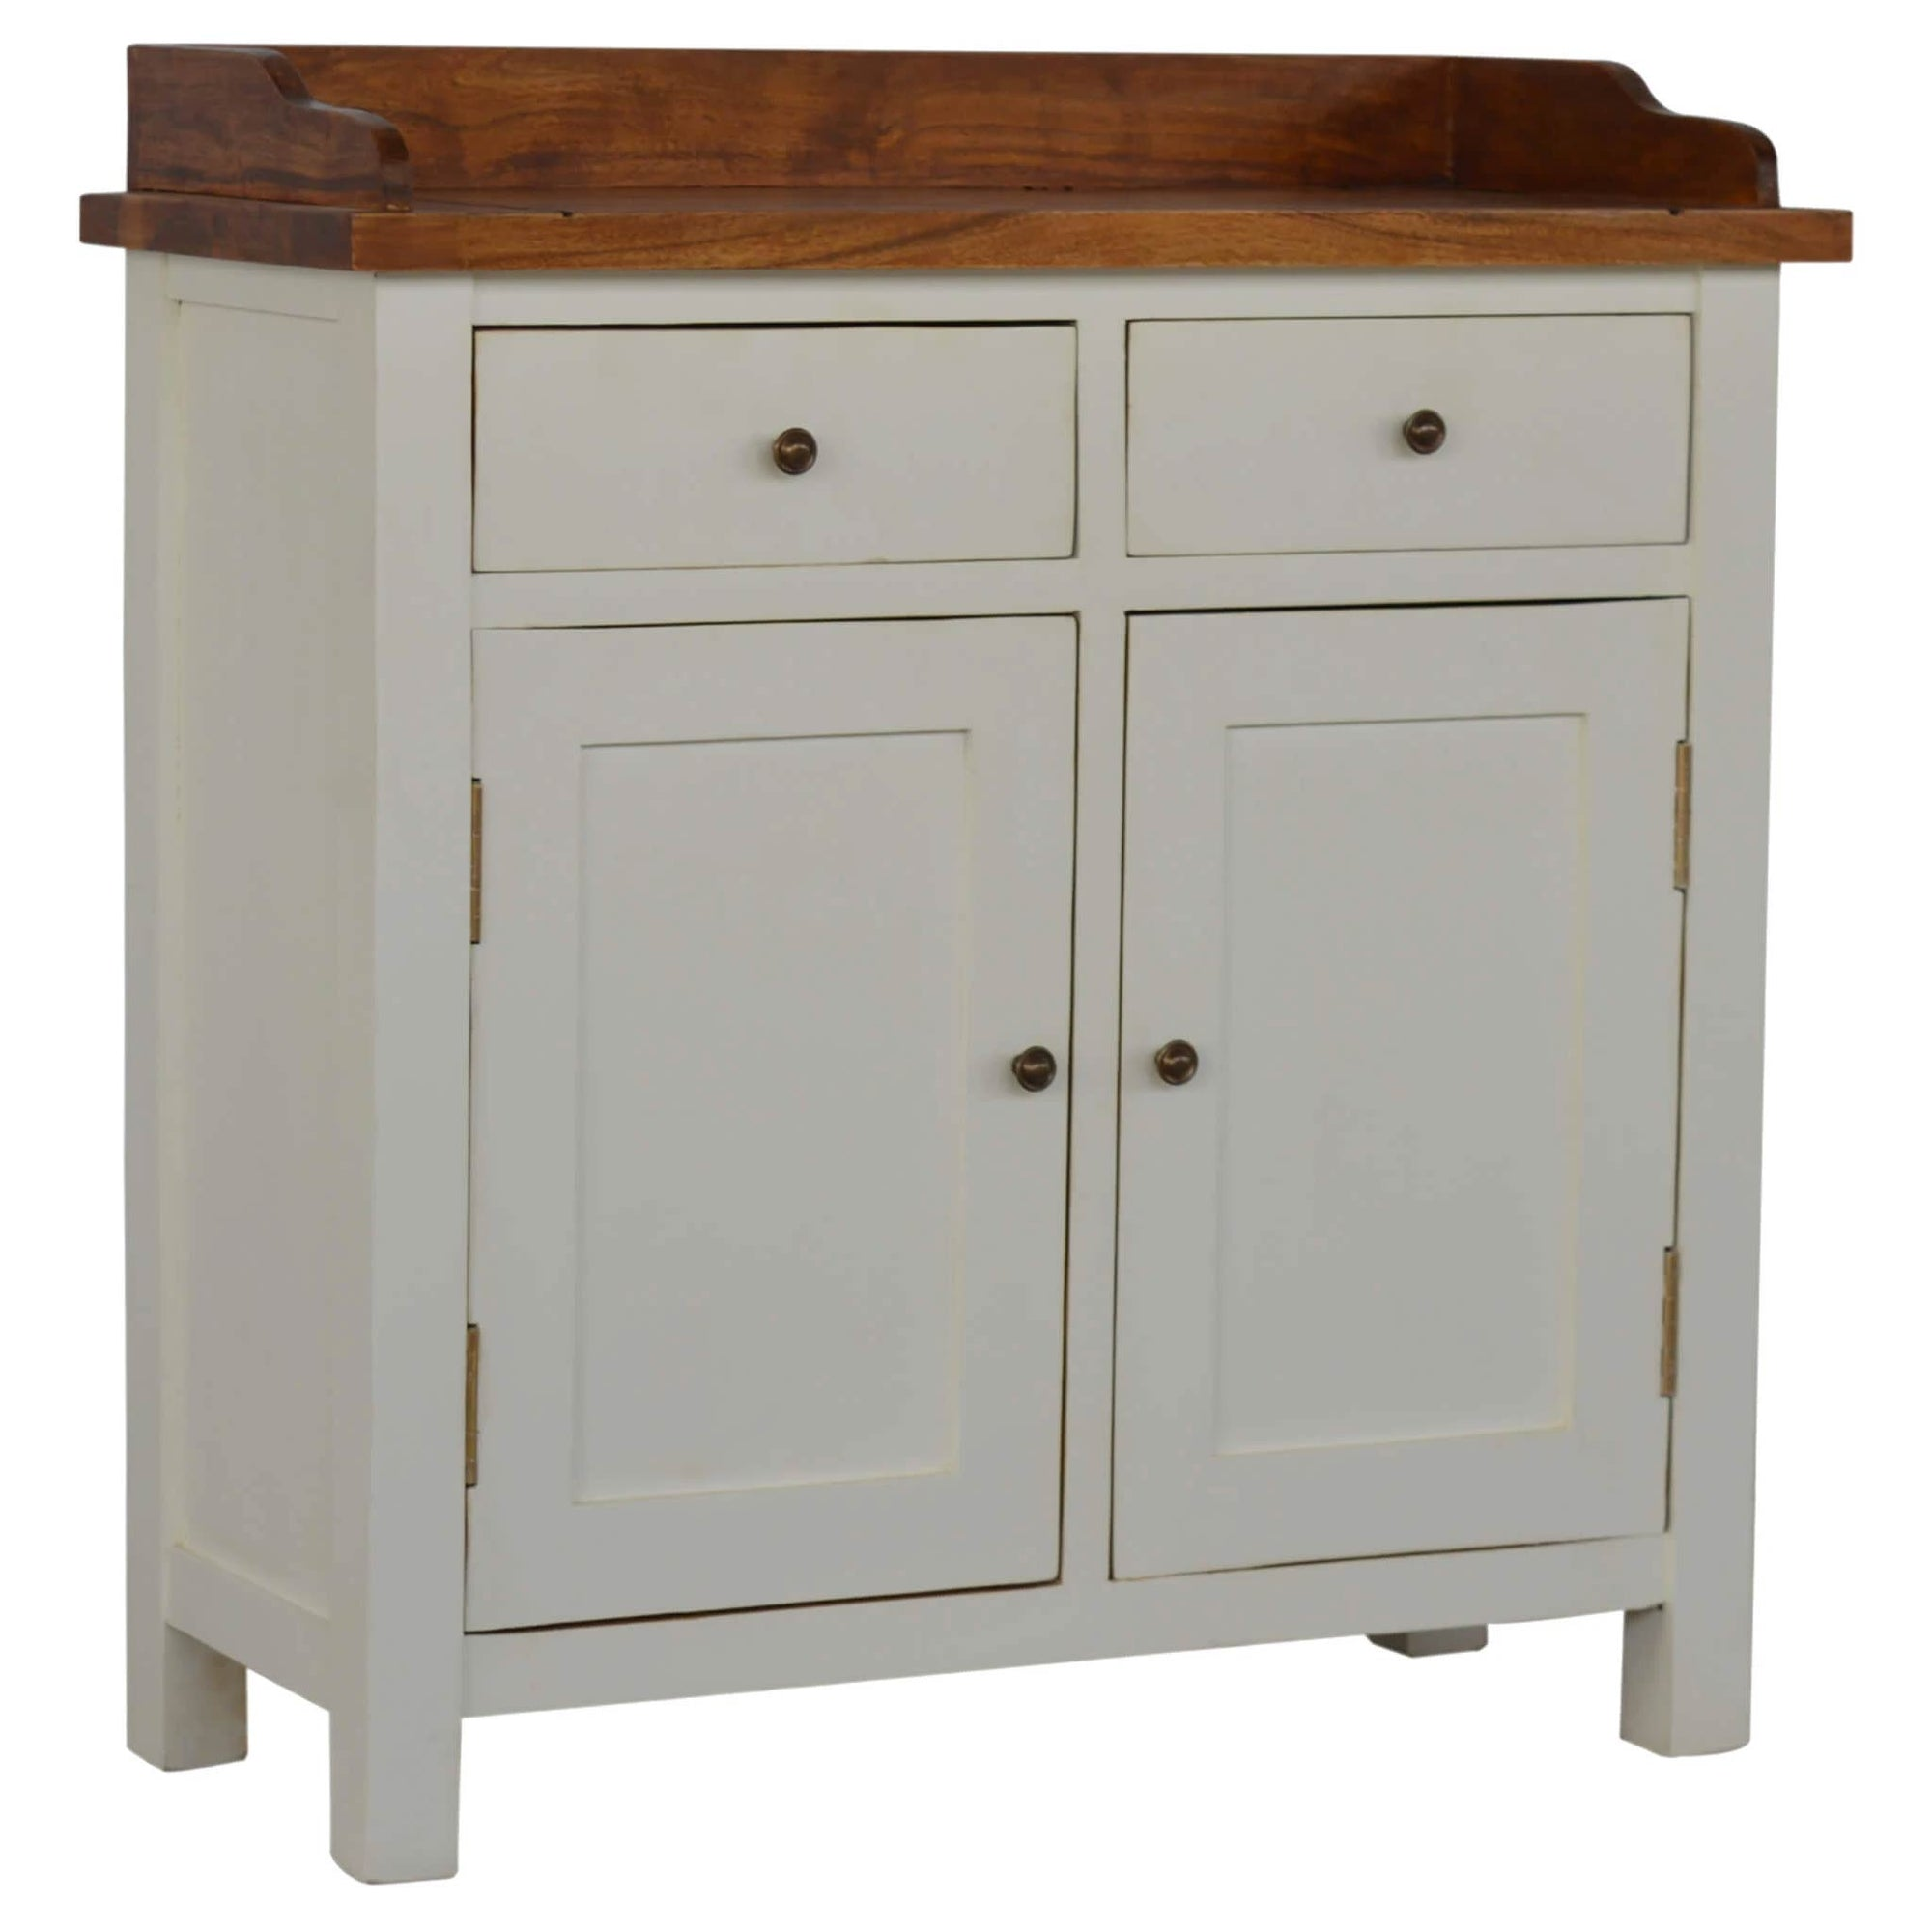 Artisan 2 Toned Kitchen Unit with Gallery Back by Roseland Furniture